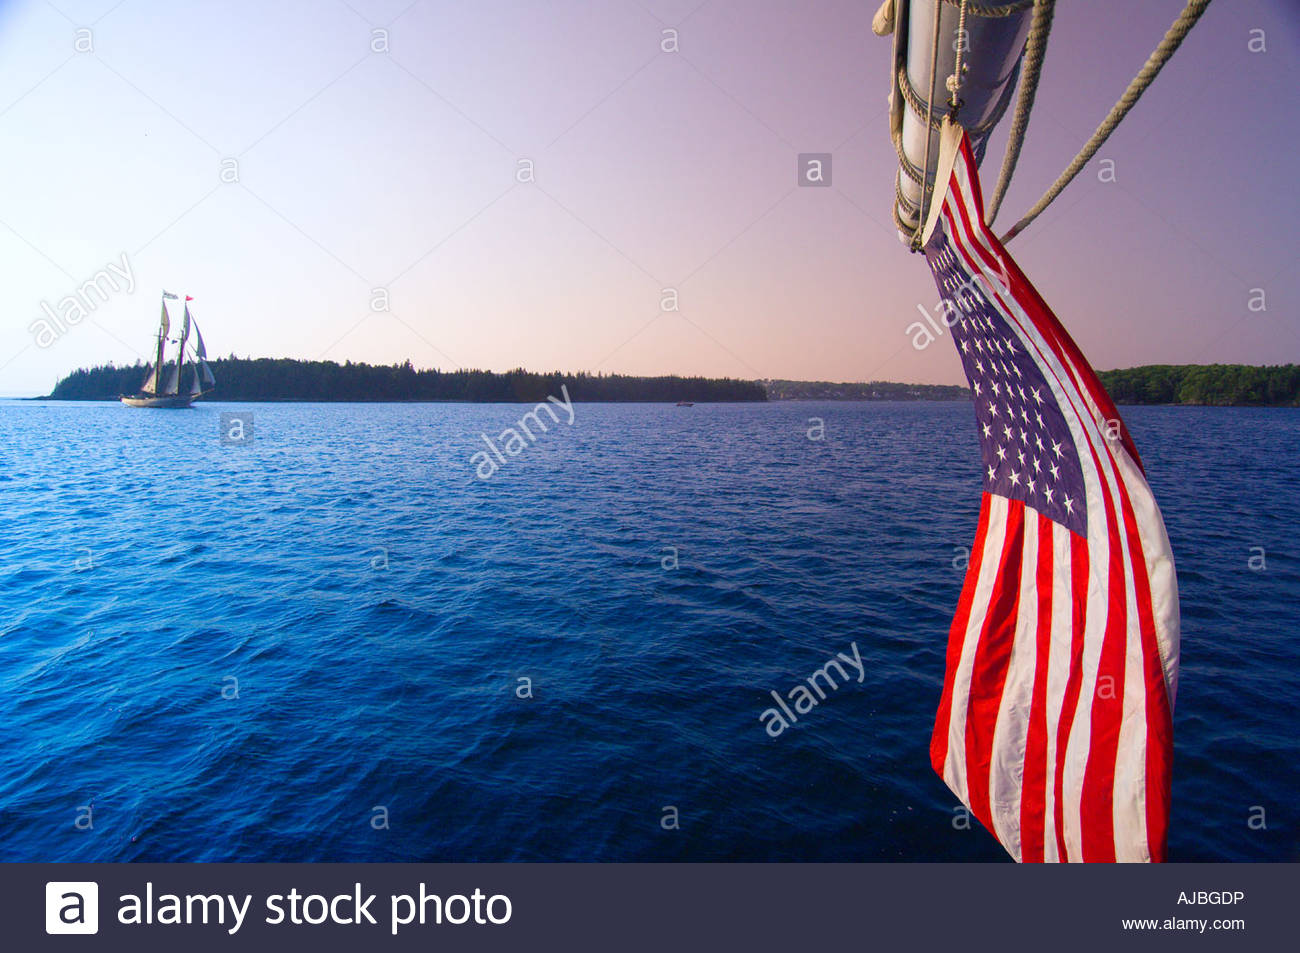 The American flag on the stern of the schooner Nathaniel Bowditch and looking across Holbrook Bay to schooner Mary - Stock Image